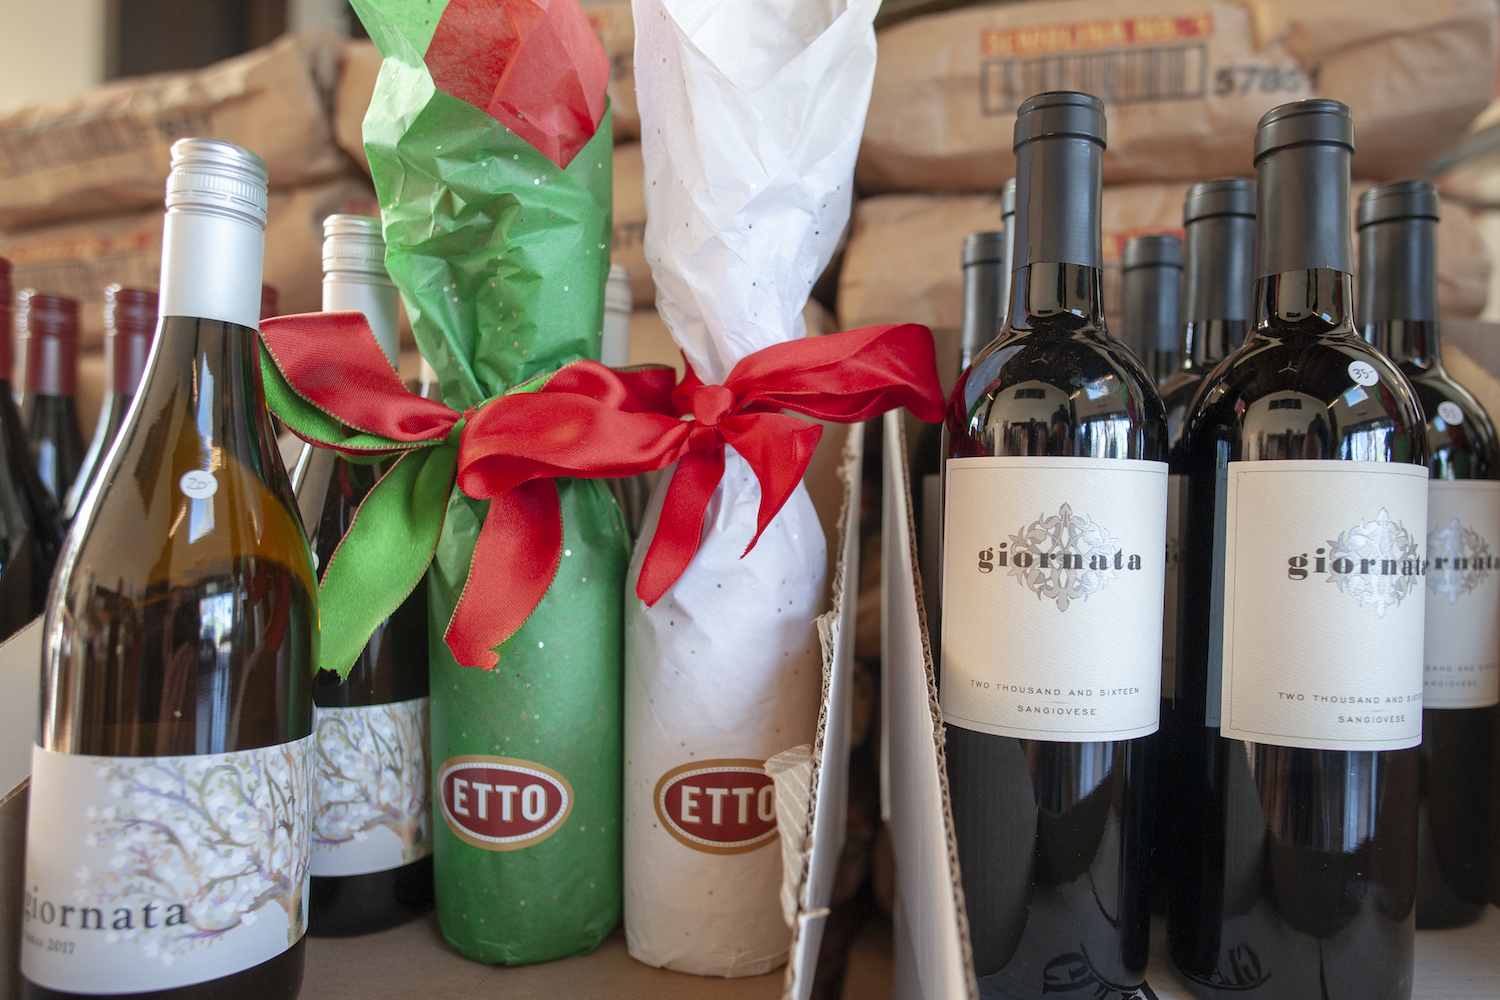 Giornata, Etto pasta wine, italian wine, Paso Robles wine, The Press, California